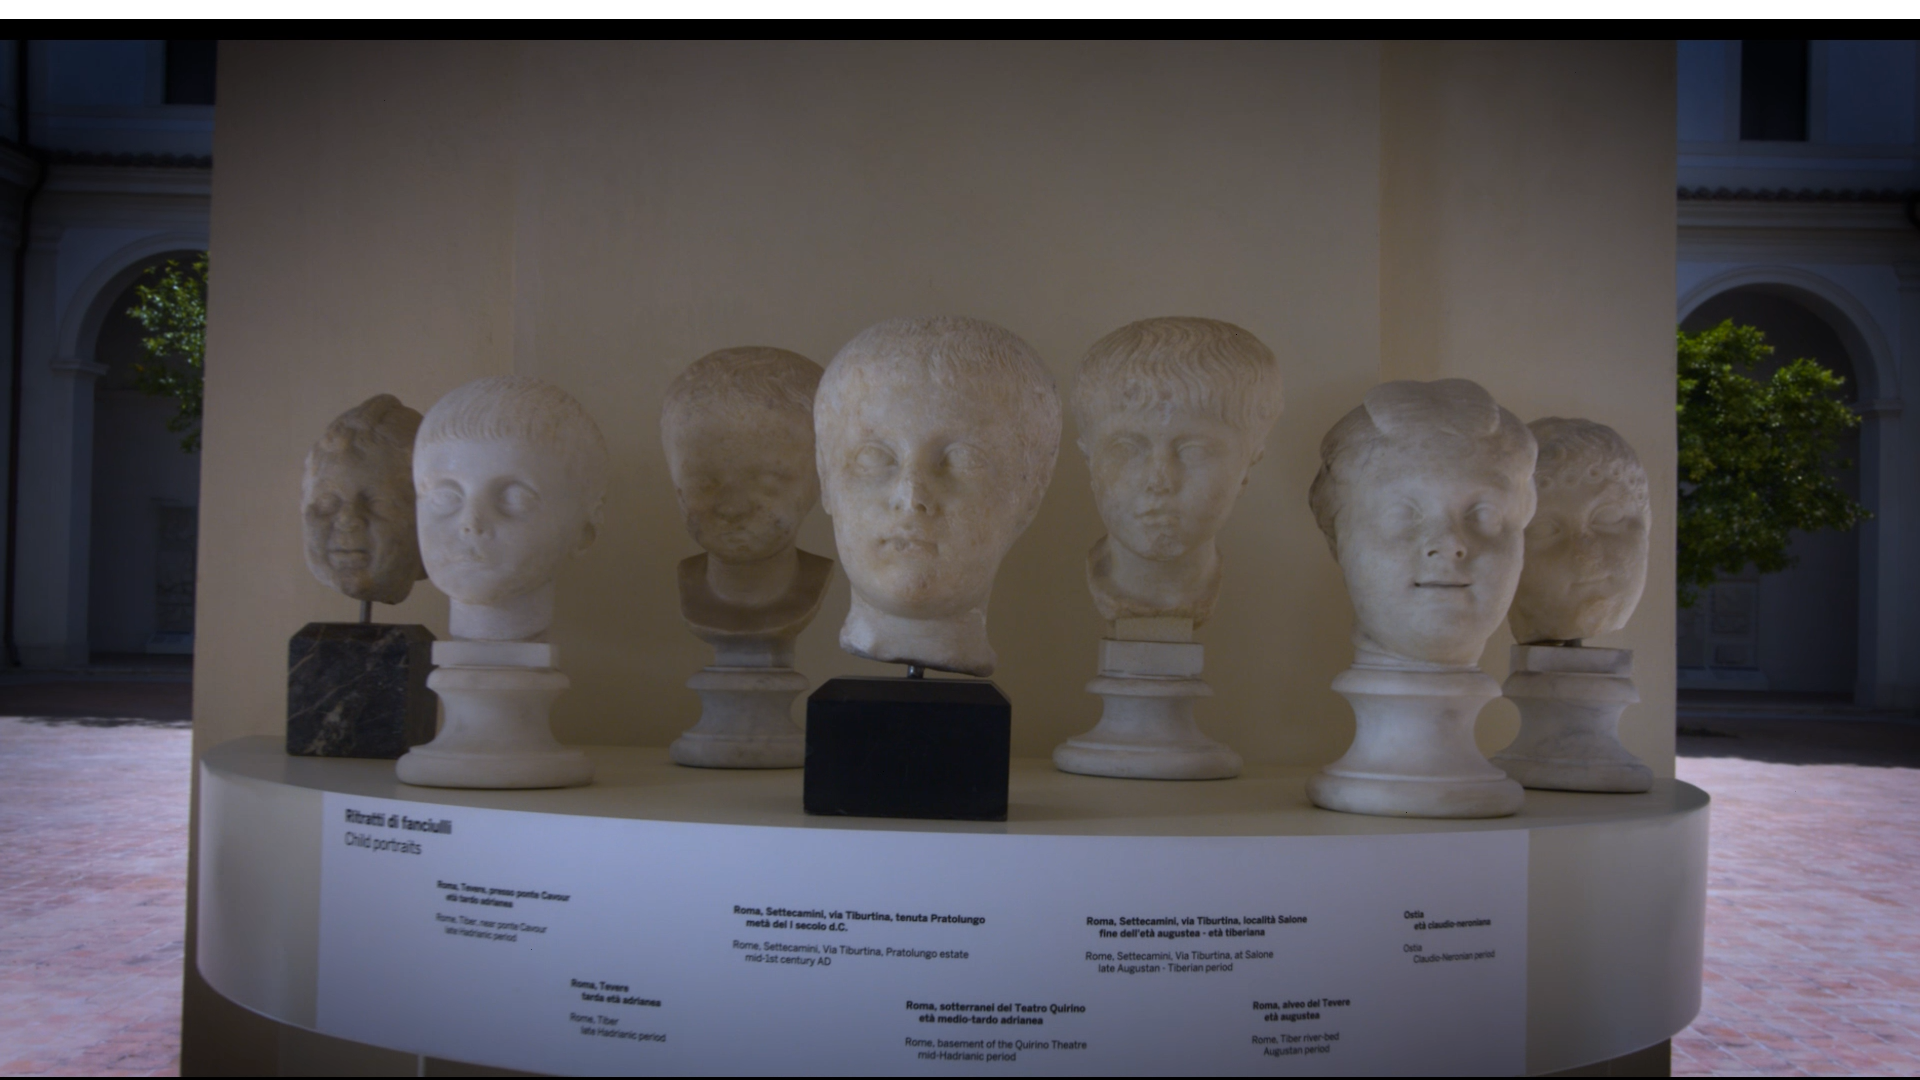 Seven marble busts of children's heads